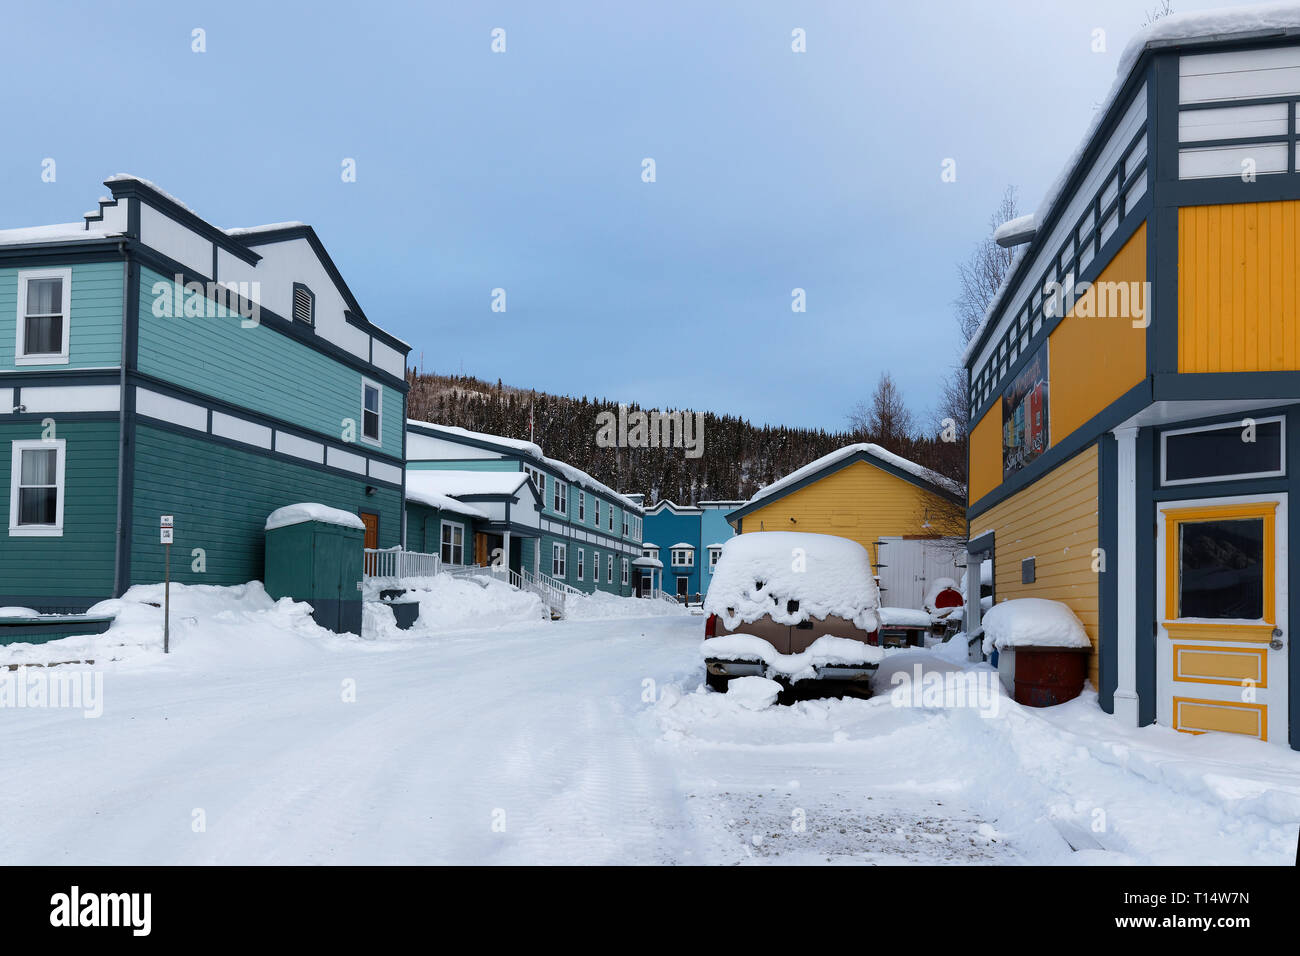 DAWSON CITY, YUKON, CANADA, March 11, 2019 : A snowy street. Dawson City is linked to the Klondike Gold Rush and featured prominently in the novels of - Stock Image